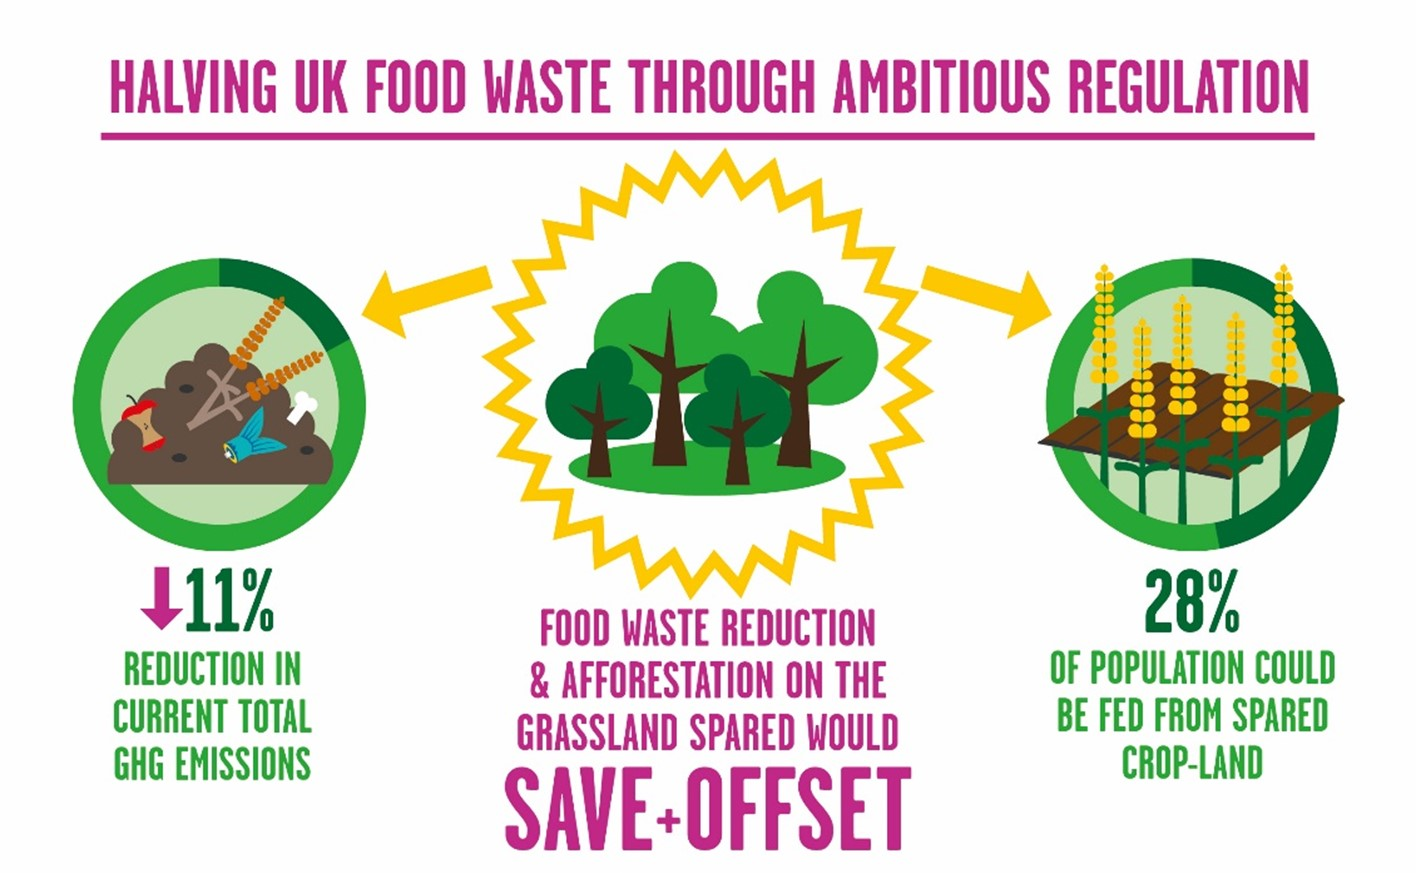 Figure: Halving food waste through ambitious regulation.